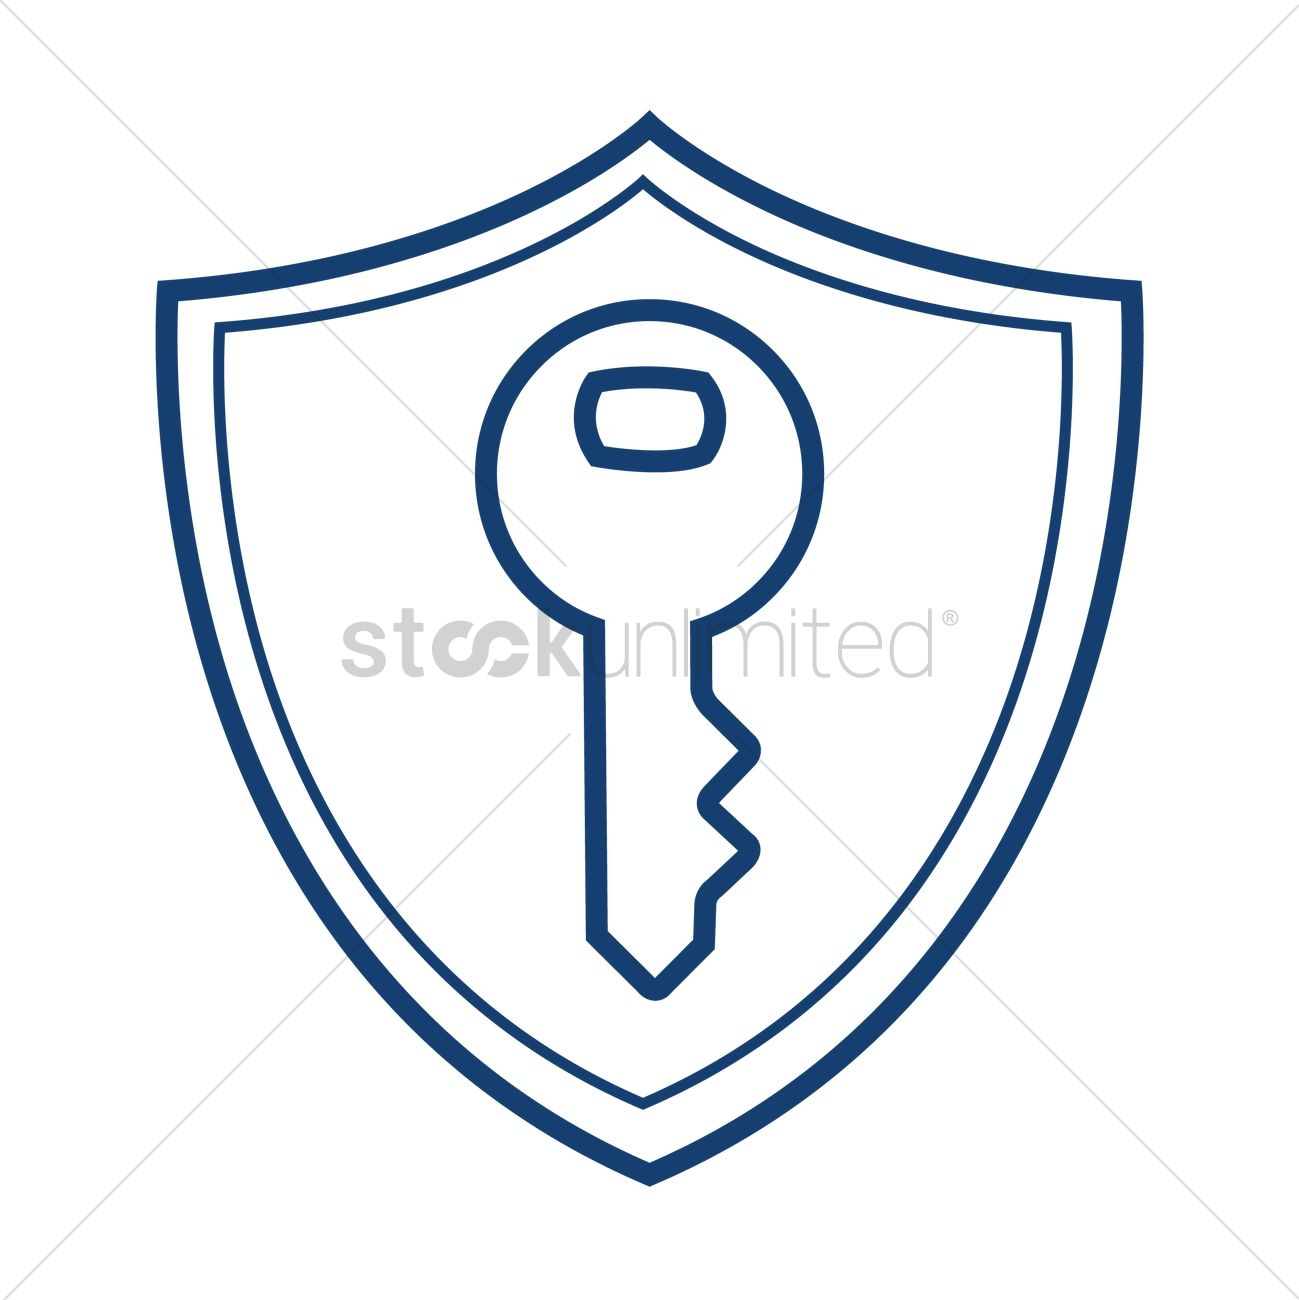 Computer system protection shield symbol vector image 2007754 computer system protection shield symbol vector graphic buycottarizona Image collections